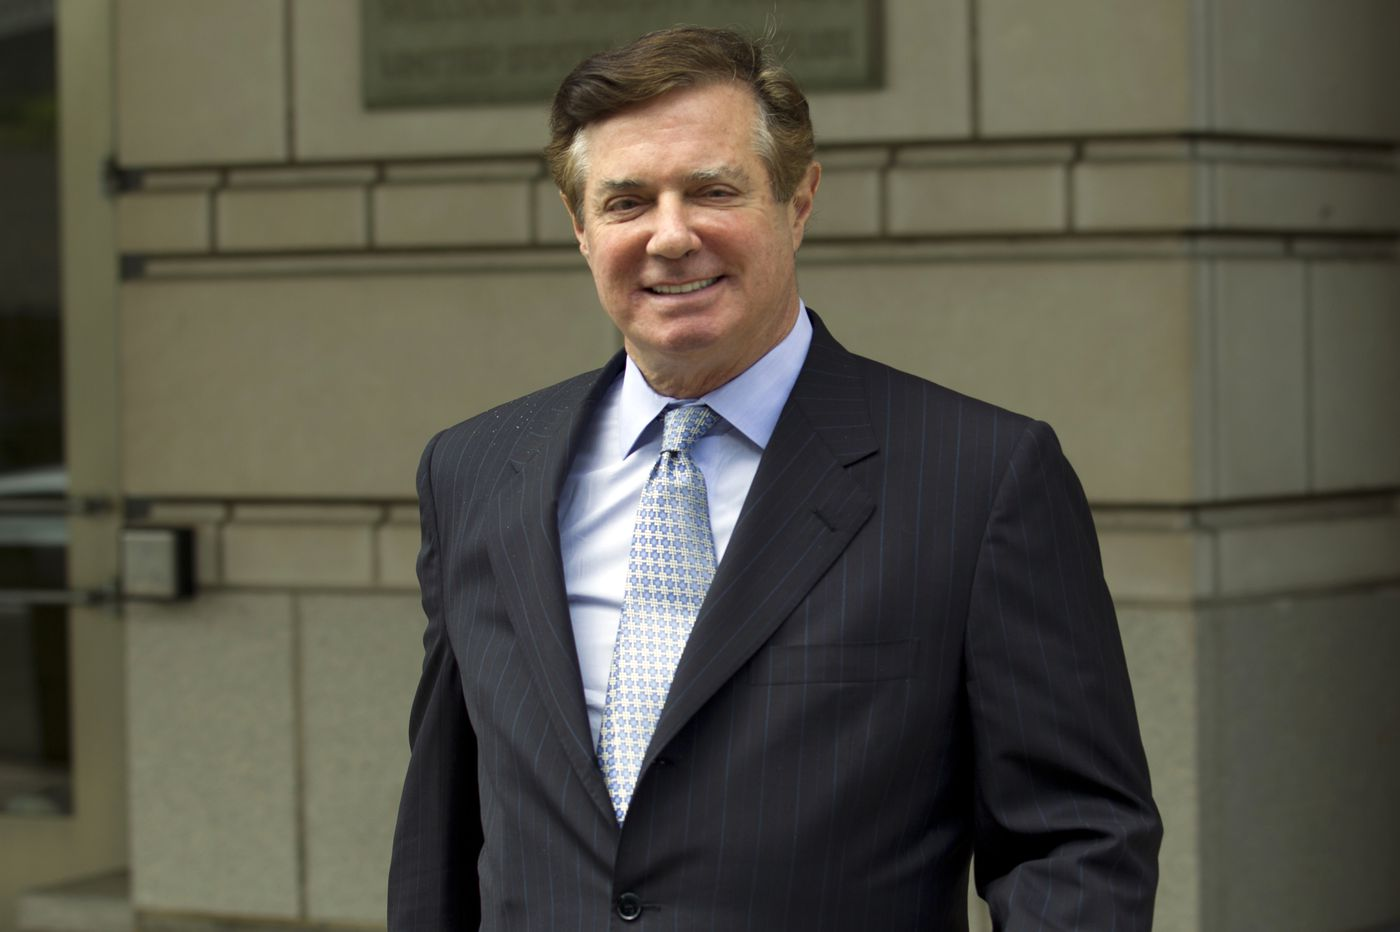 Mueller: Manafort 'brazenly violated the law' for years